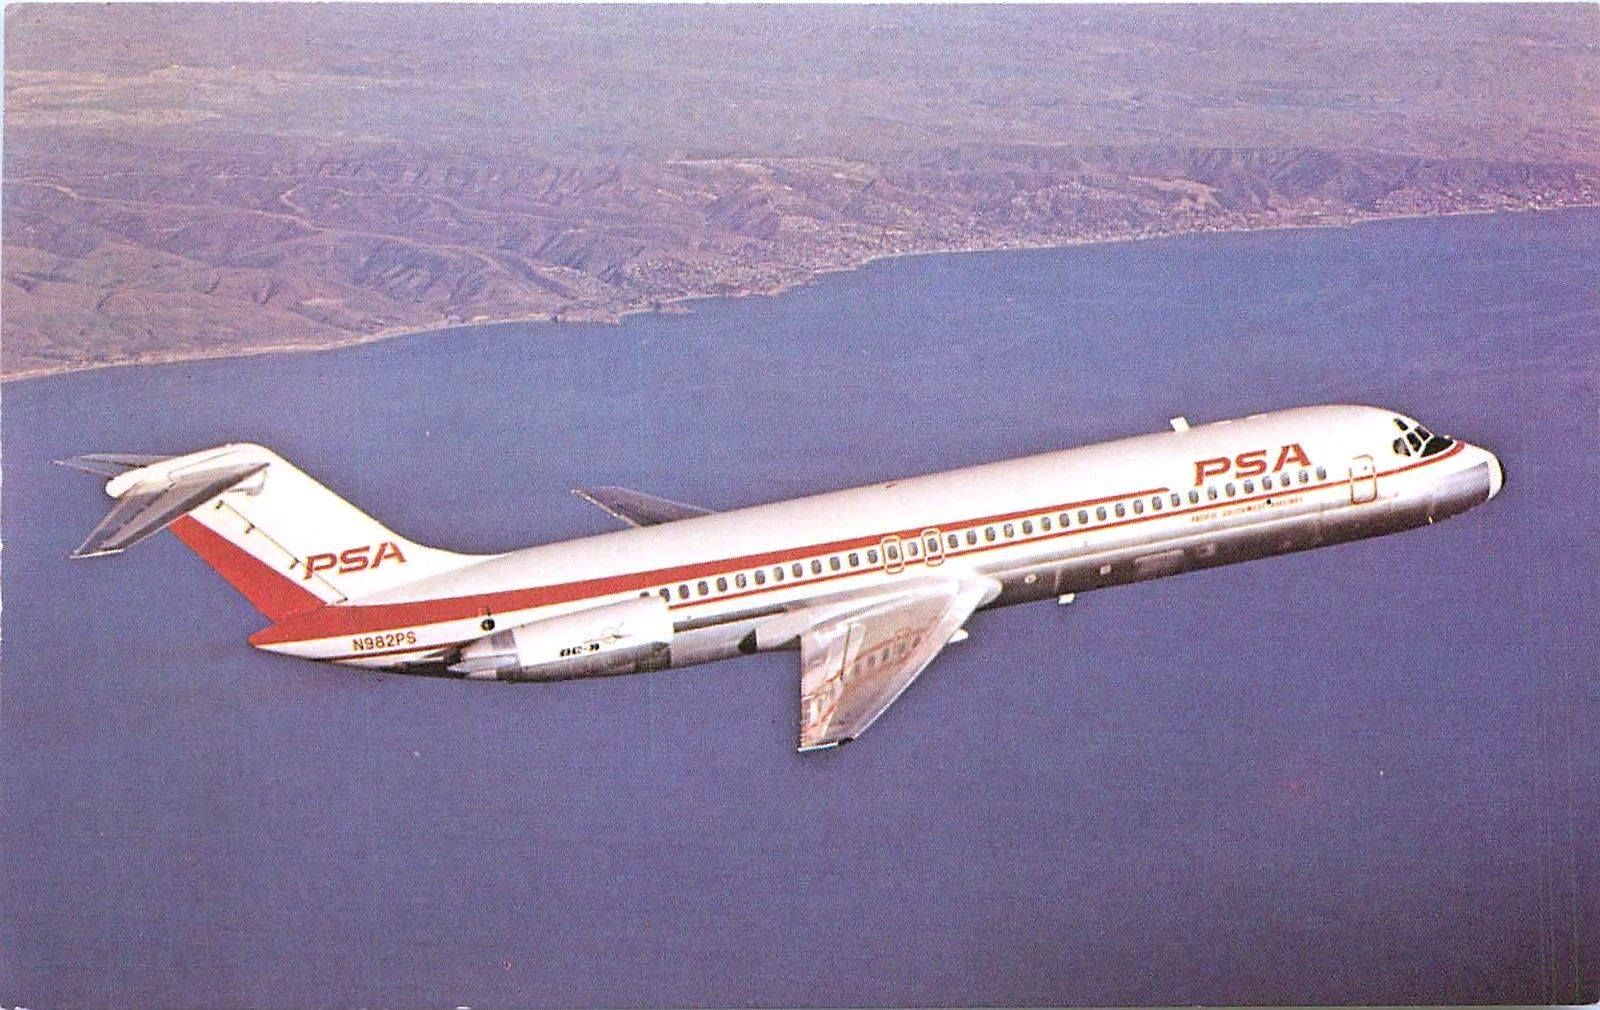 Pin by Paul Kimo McGregor on Airlines from the Past